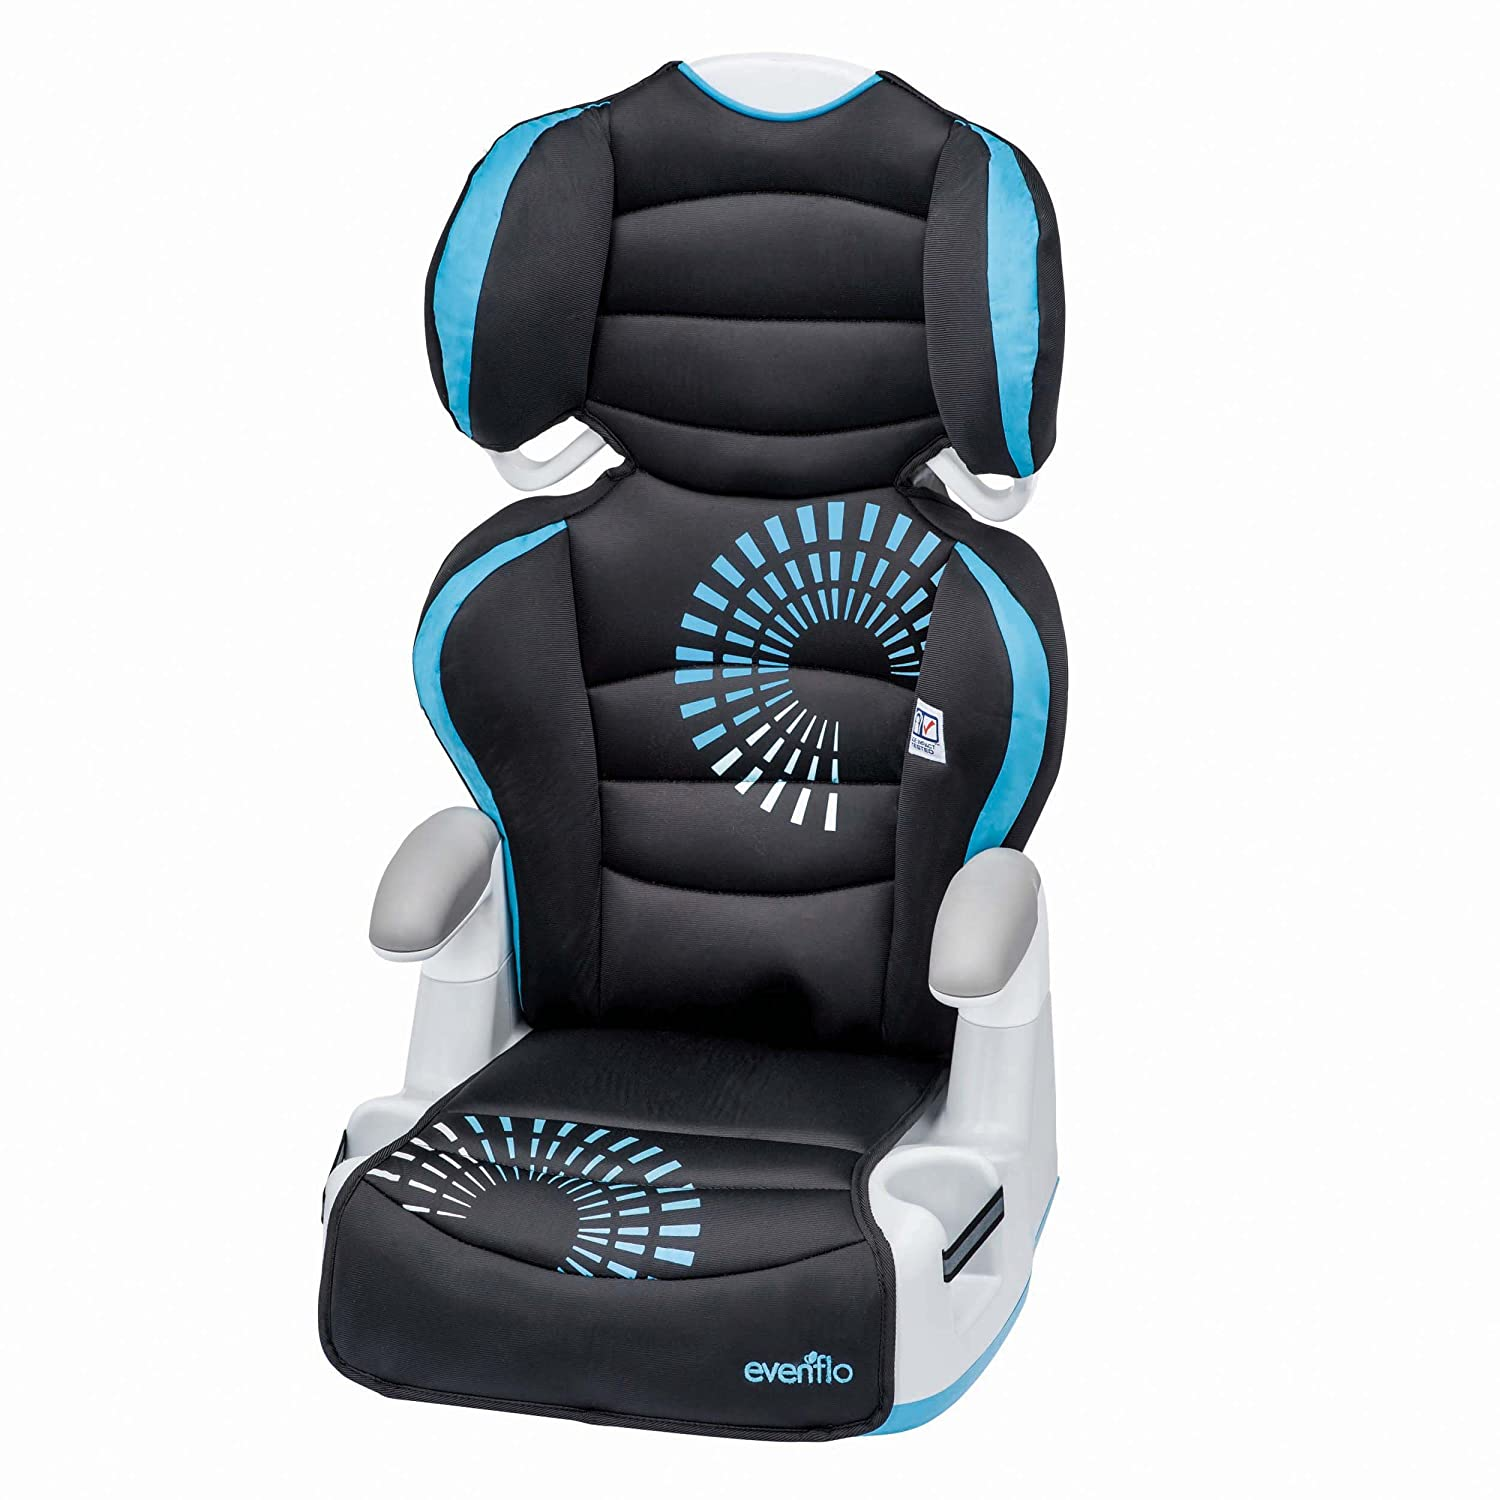 <strong>Evenflo Big Kid AMP Booster Seat</strong>